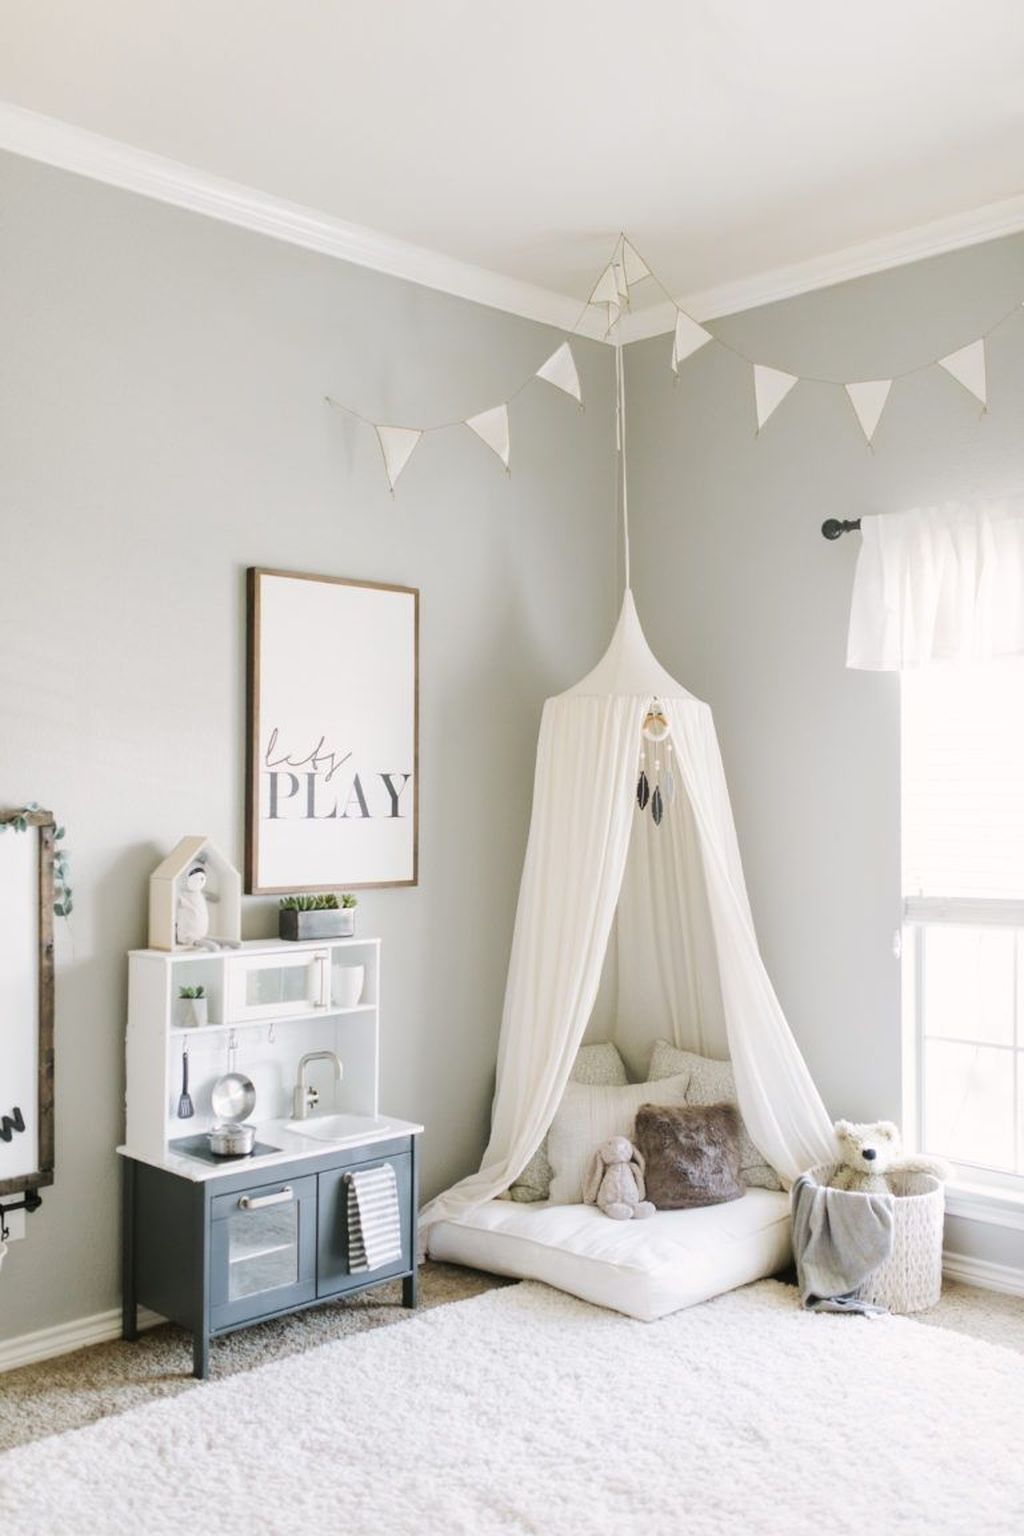 children's bedroom children's bedroom What's Hot On Pinterest Decorate Your Children's Bedroom! Affordable Kids Room Design Ideas To Inspire Today 08